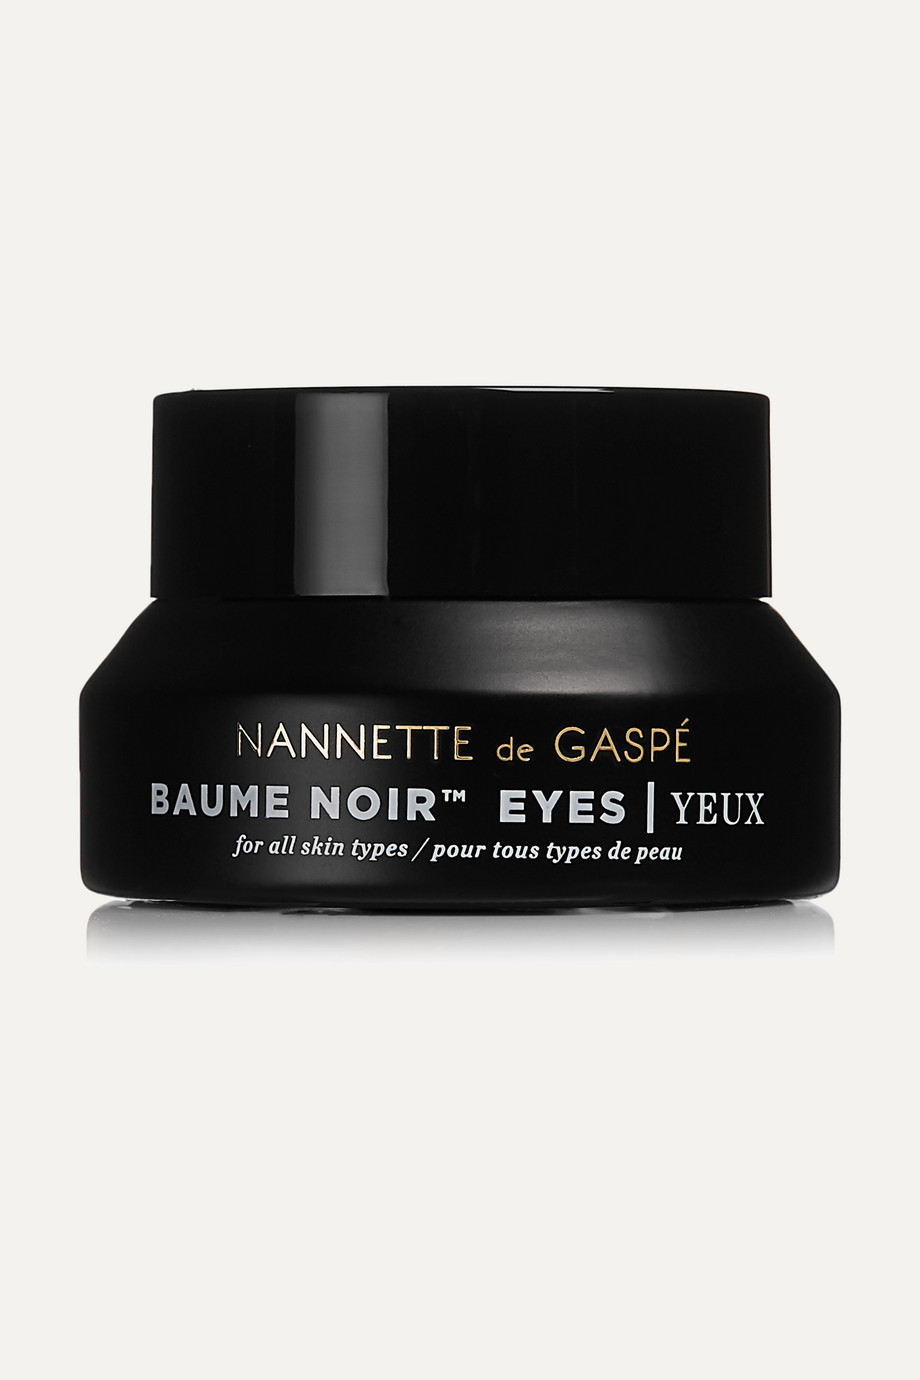 NANNETTE DE GASPÉ Art of Noir - Baume Noir Eyes, 15ml